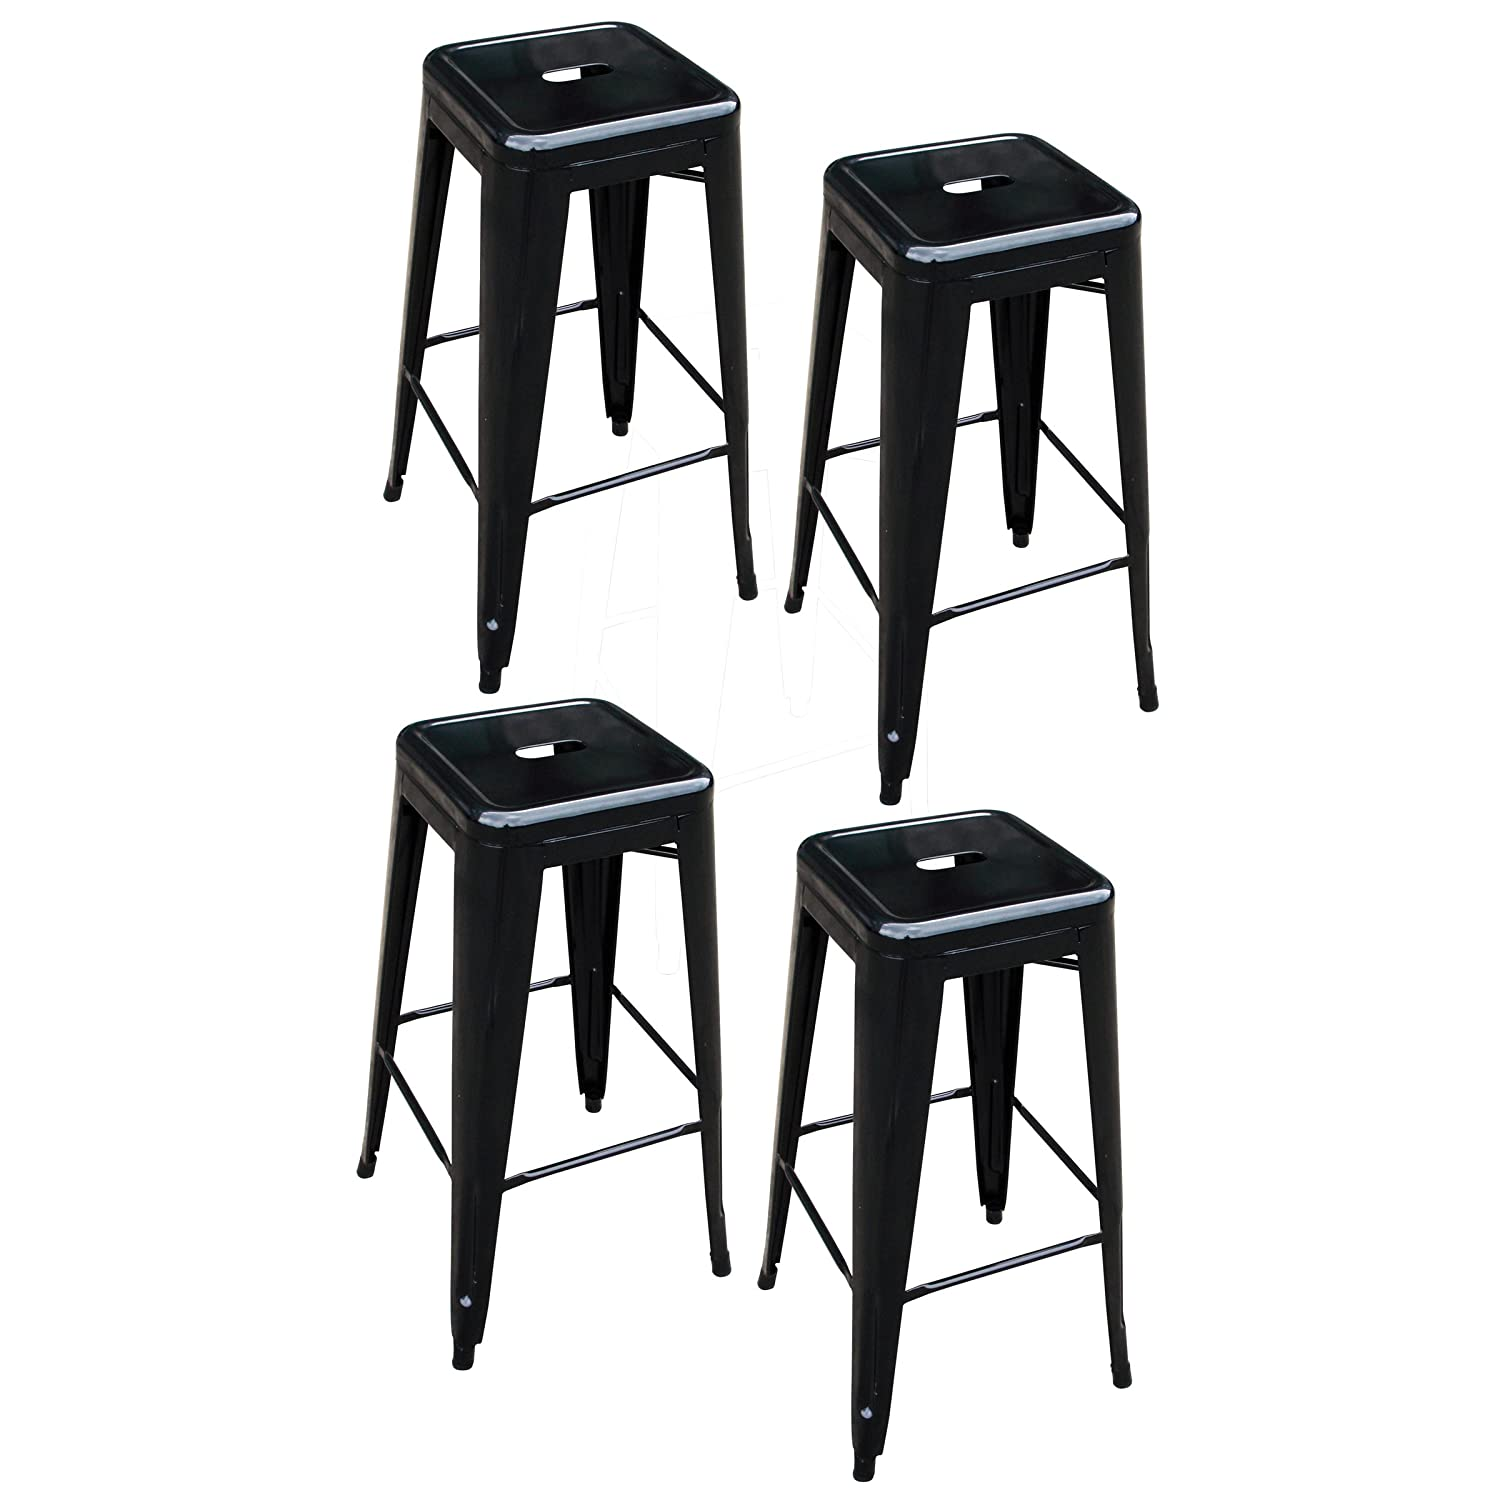 Amazon.com AmeriHome Metal Bar Stool Set 30-Inch Black Set of 4 Kitchen u0026 Dining  sc 1 st  Amazon.com & Amazon.com: AmeriHome Metal Bar Stool Set 30-Inch Black Set of ... islam-shia.org